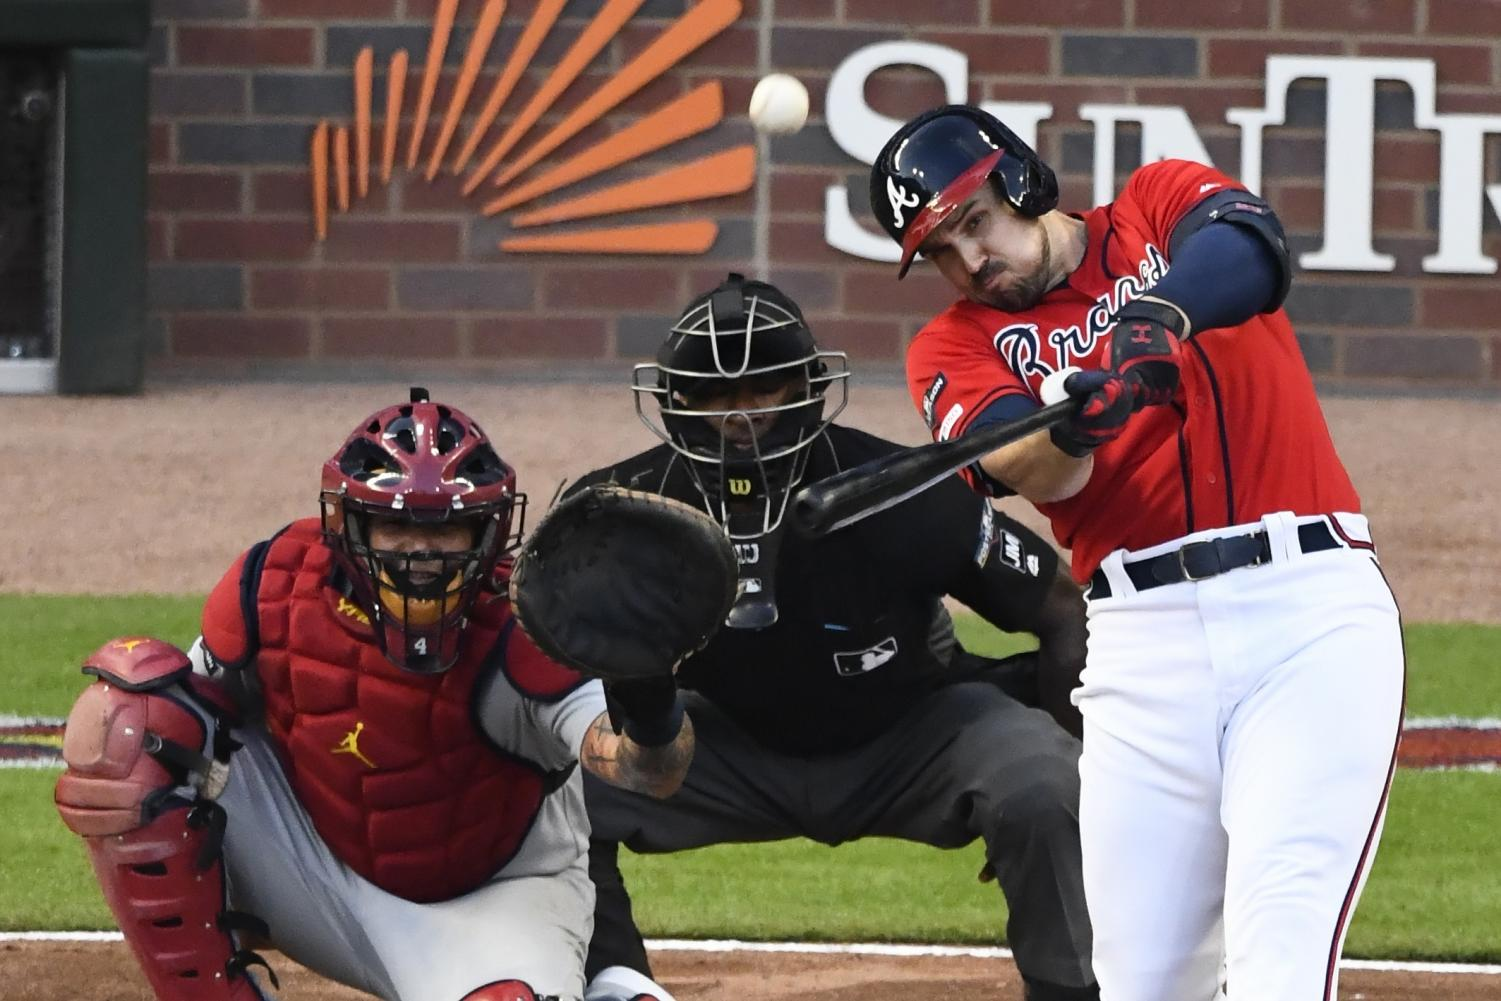 Adam Duvall bats for the Braves, but couldn't manage a homerun against the Cardinals in game 5 of the series playoffs. Atlanta lost 13-1 and was knocked from the playoffs.  Photo by: BusinessInsider.